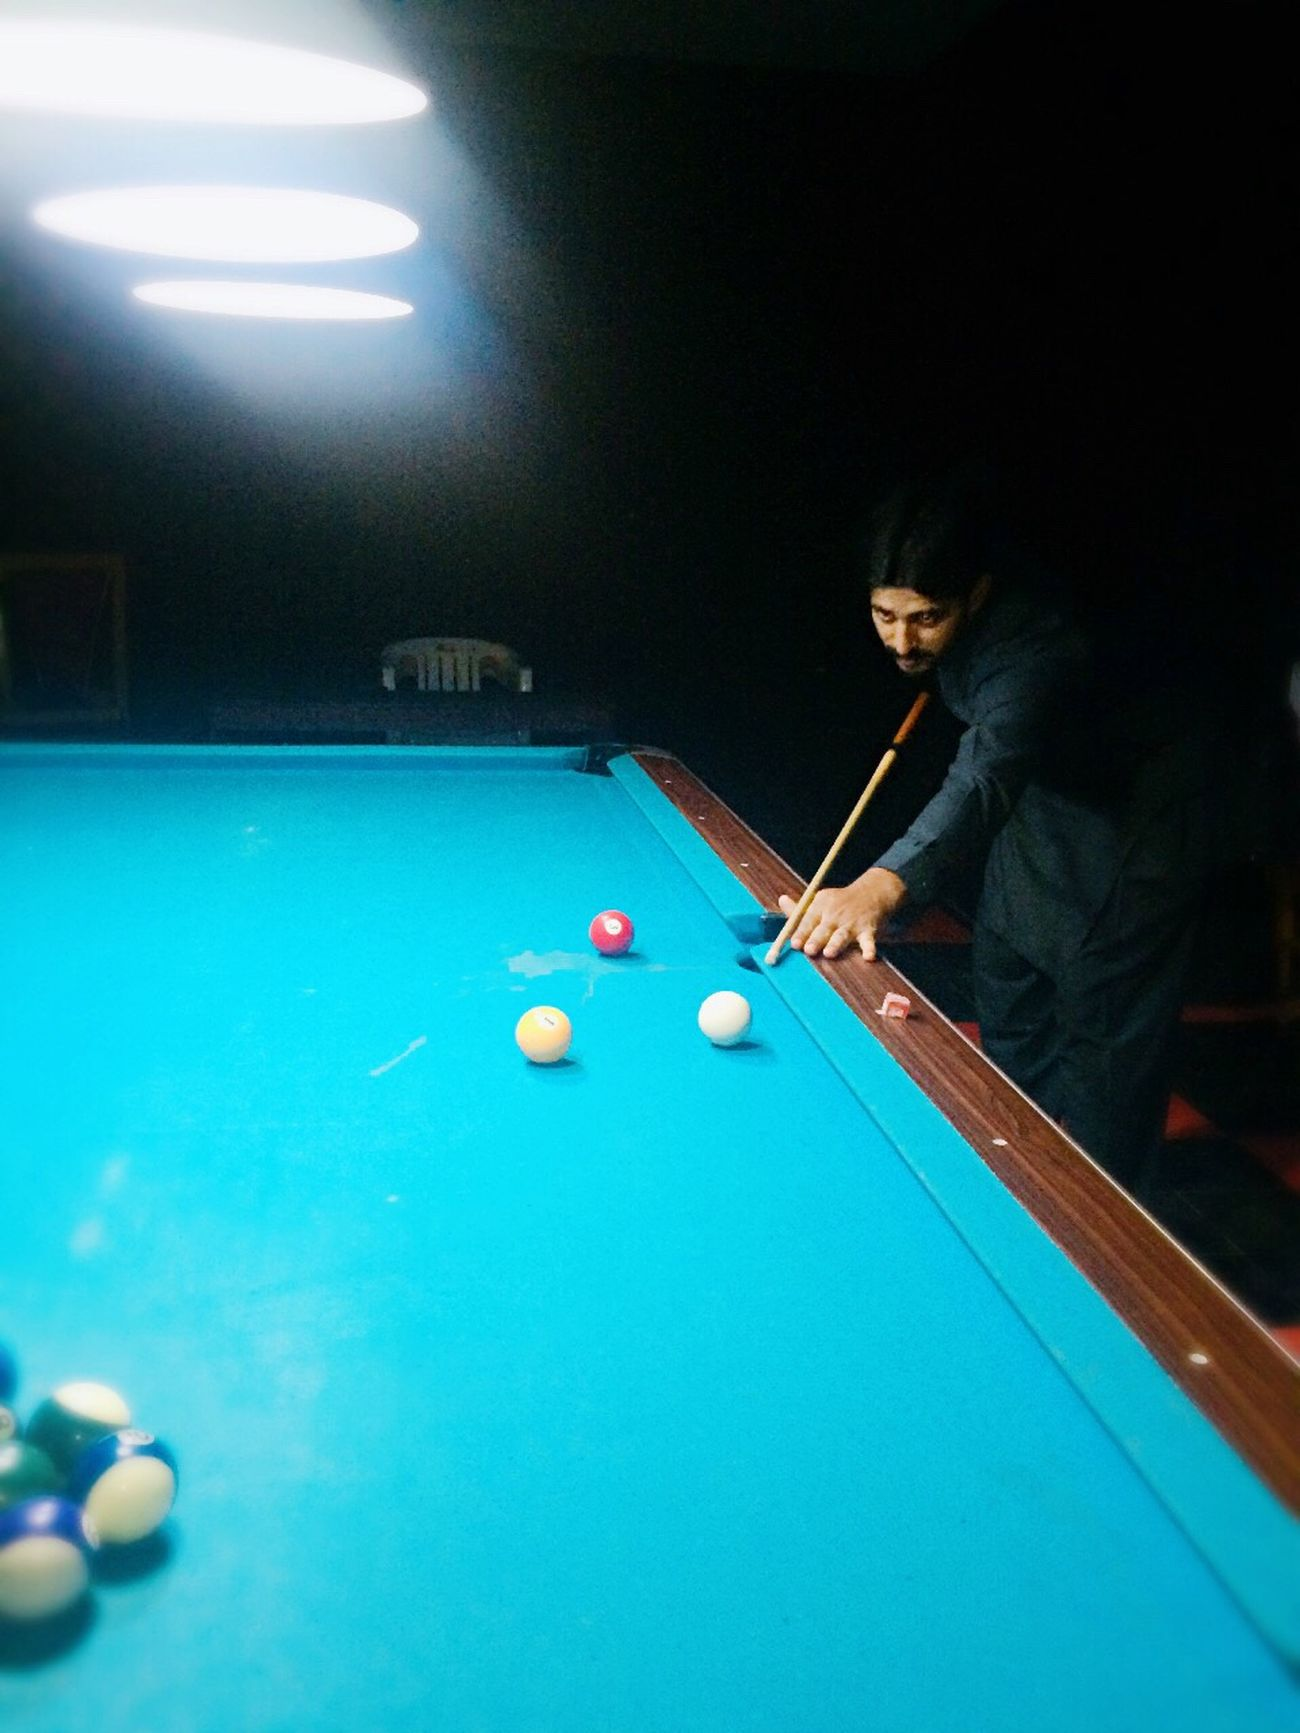 Weekend Activities Snooker With Friends Enjoying Life Hi! Pakistani Beautiful Pakistan Selfie ✌ First Eyeem Photo Today's Hot Look That's Me My City Dhaunkal Looking At Camera Friendship Handsome Young Men